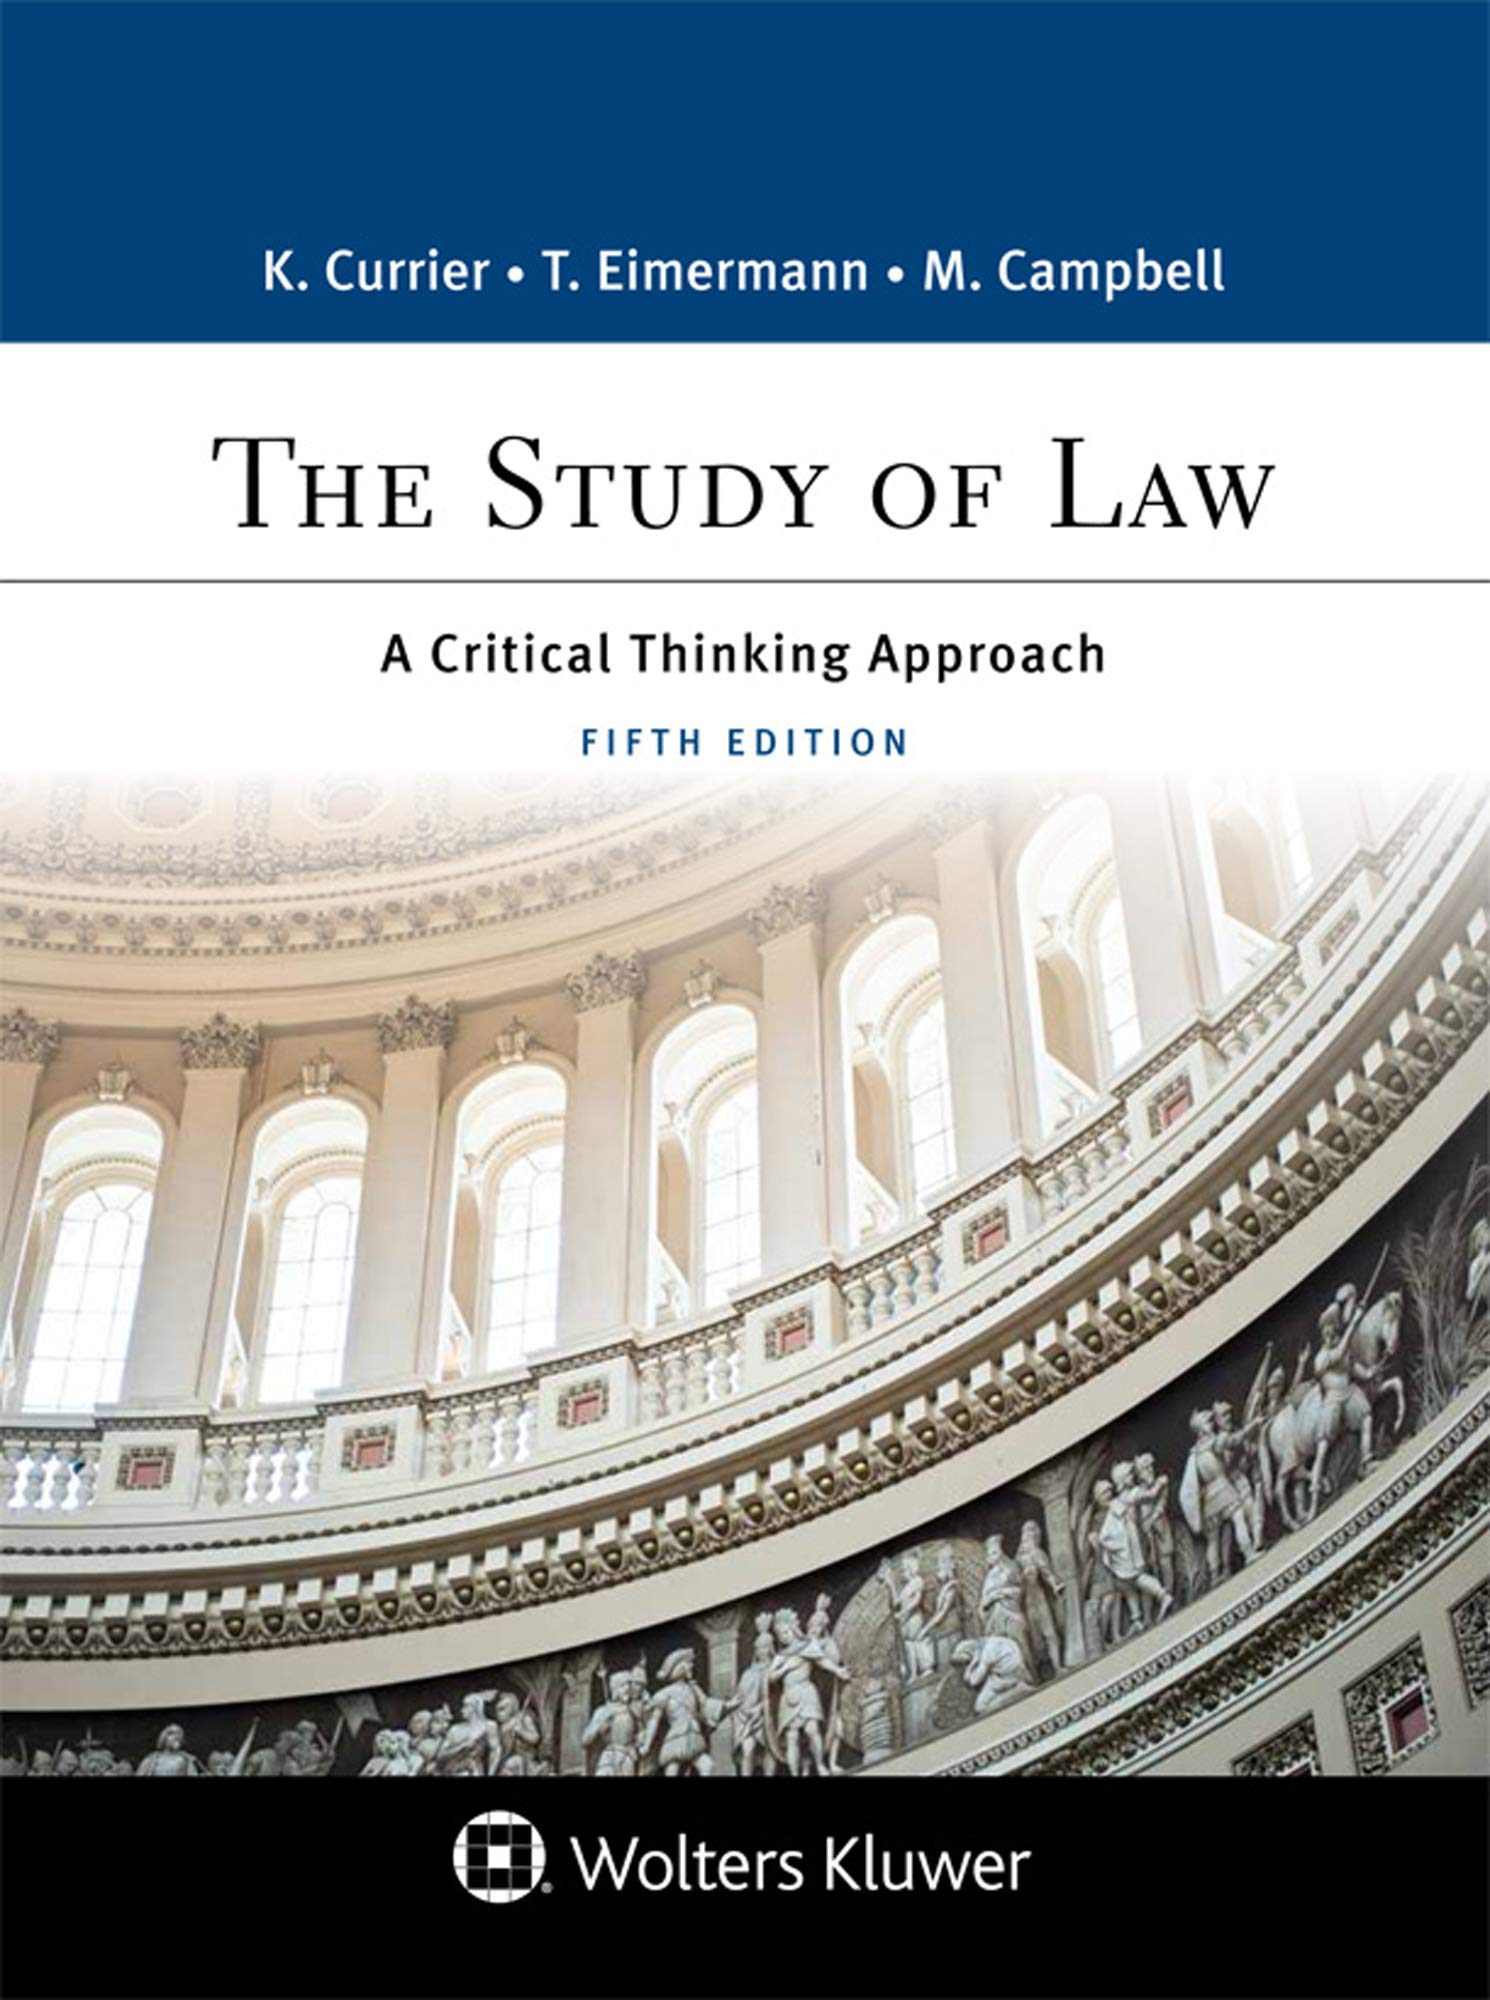 Image OfThe Study Of Law: A Critical Thinking Approach (Aspen Paralegal) (Aspen College)